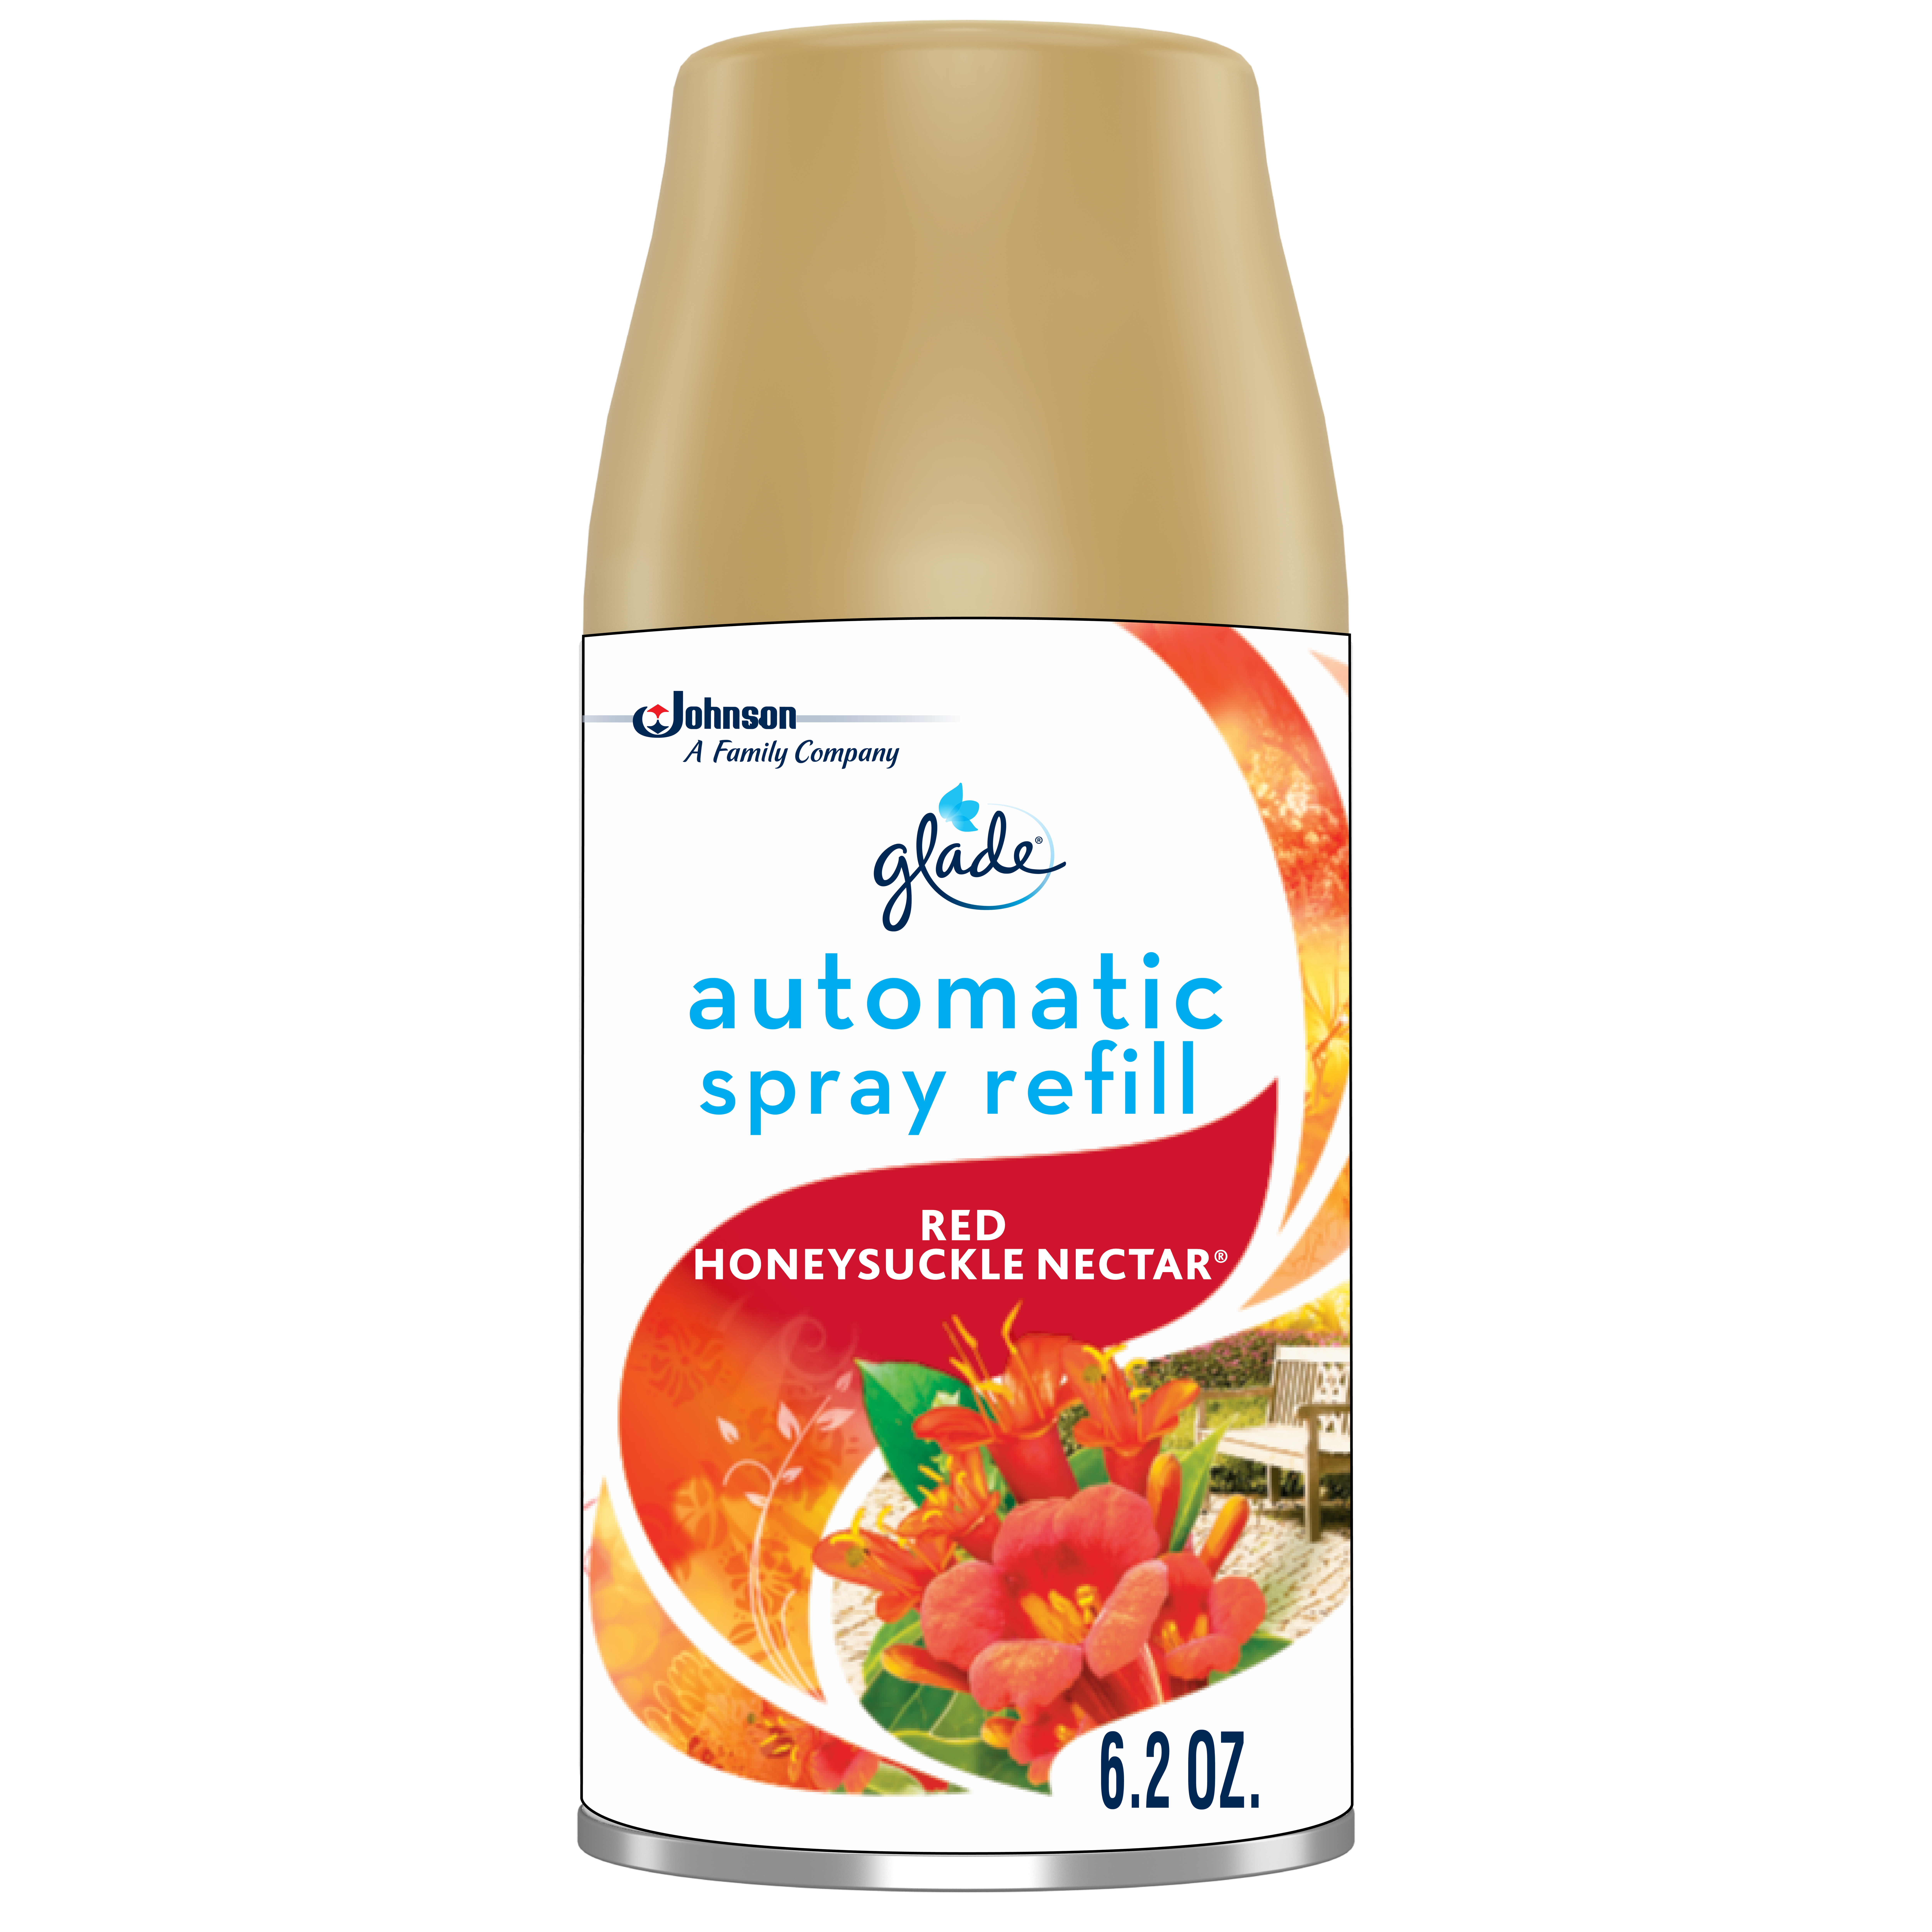 Glade Automatic Spray Refill Red Honeysuckle Nectar, Fits in Holder For Up to 60 Days of Freshness, 6.2 oz, 1 Refill